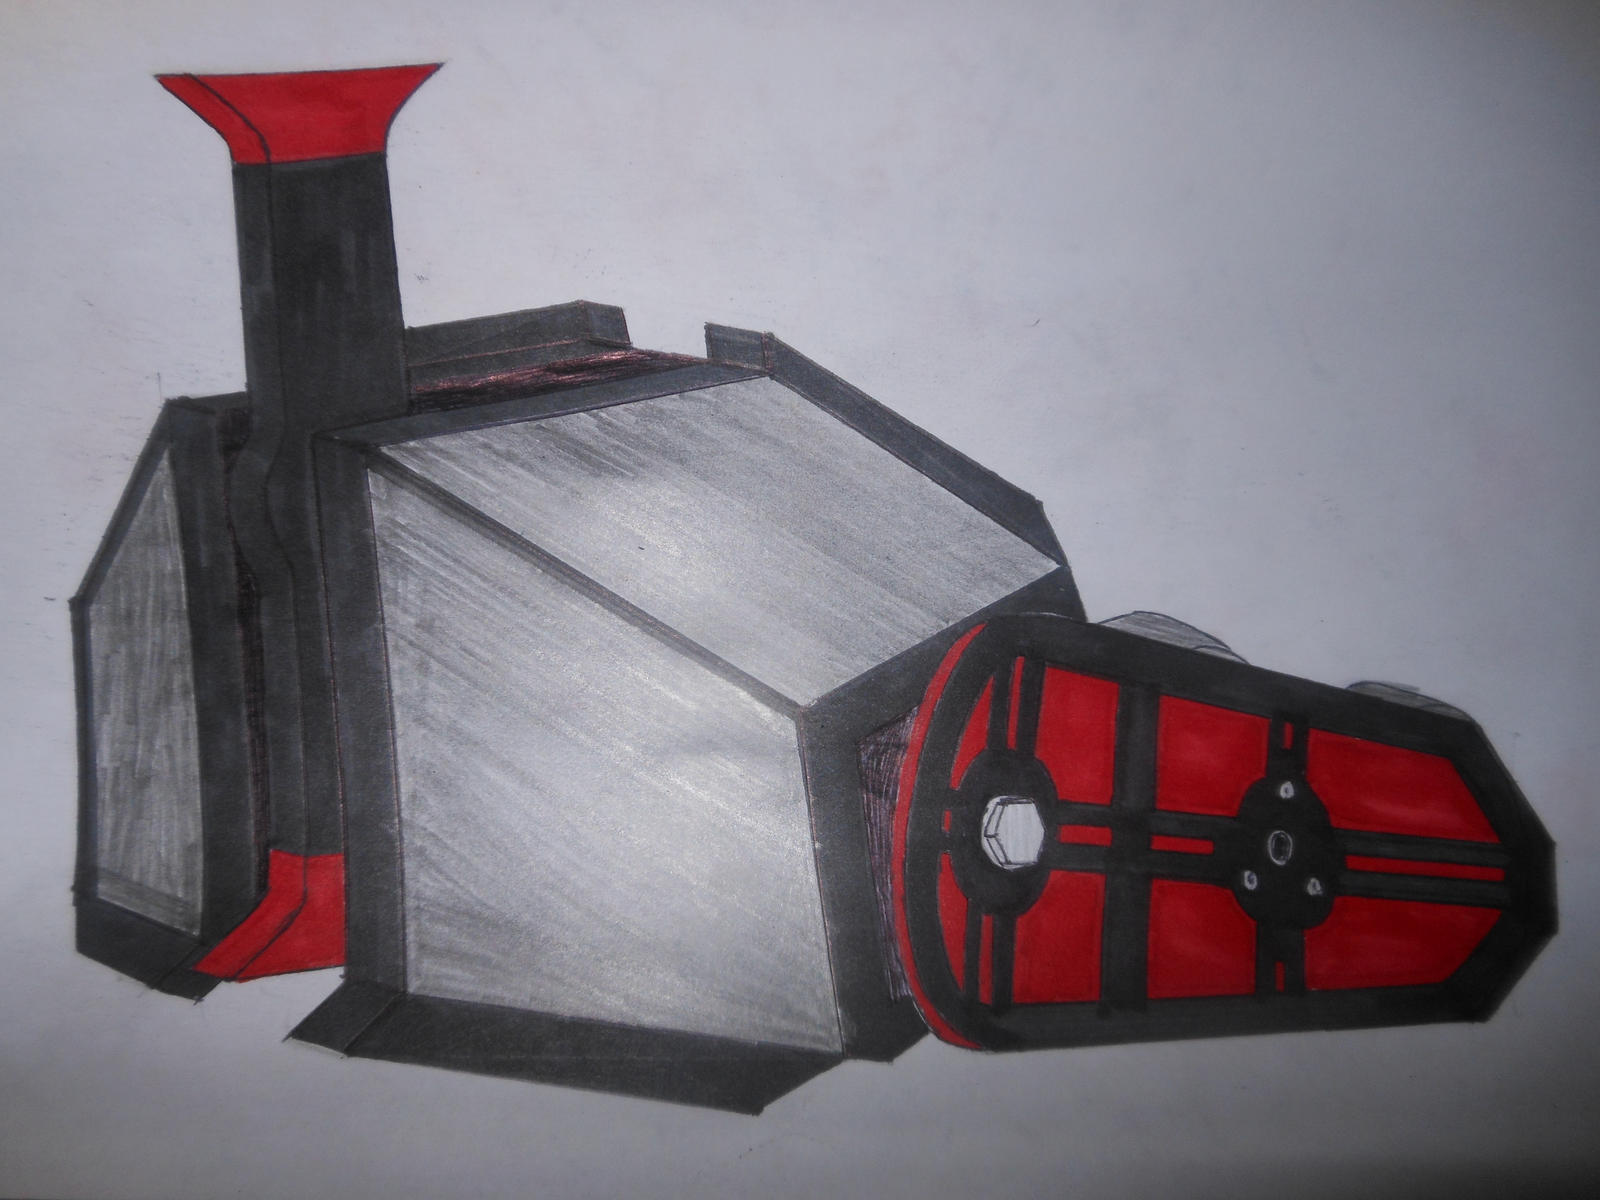 Robot Wars custom series: Tauron by sgtjack2016